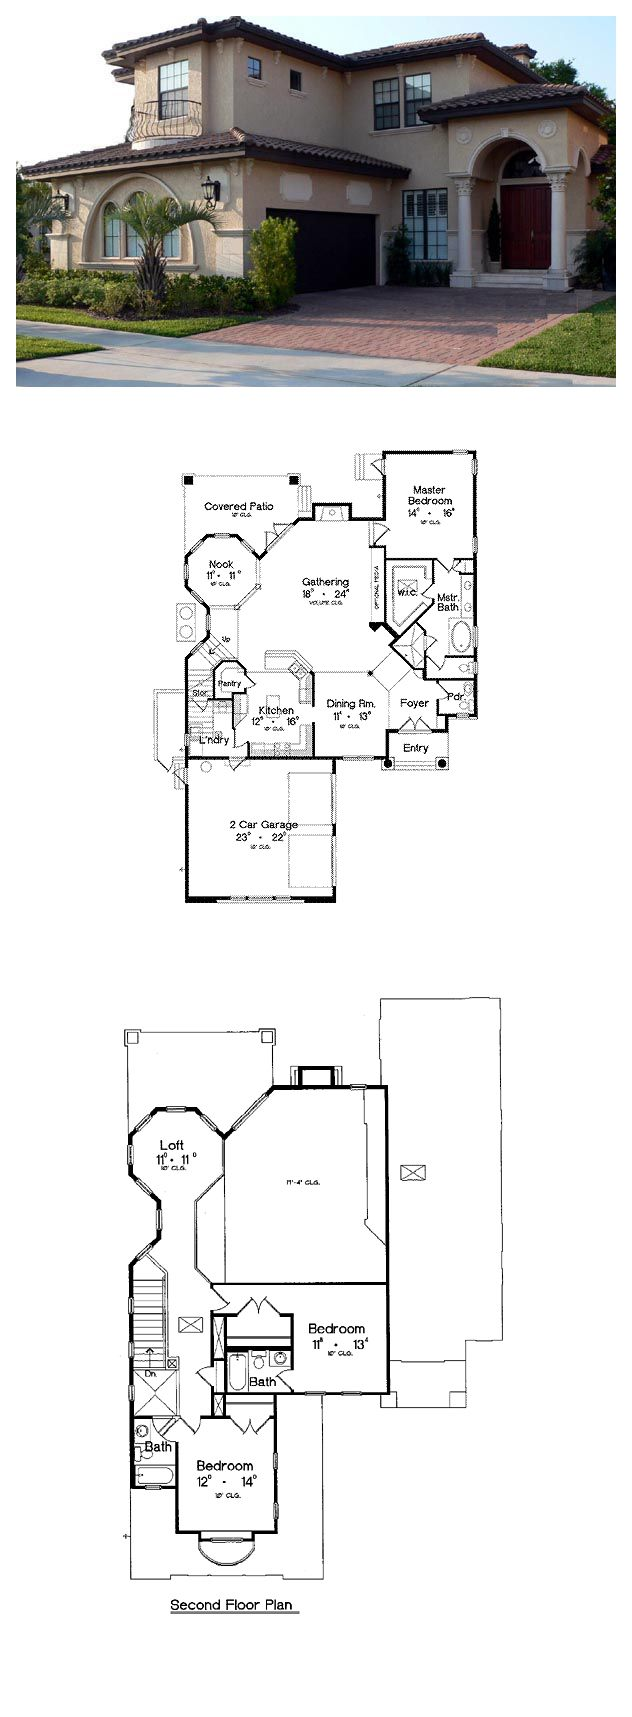 Italian House Plan 64616 | Total Living Area: 2733 sq ft, 3 bedrooms & 3.5 bathrooms. #houseplan #italian